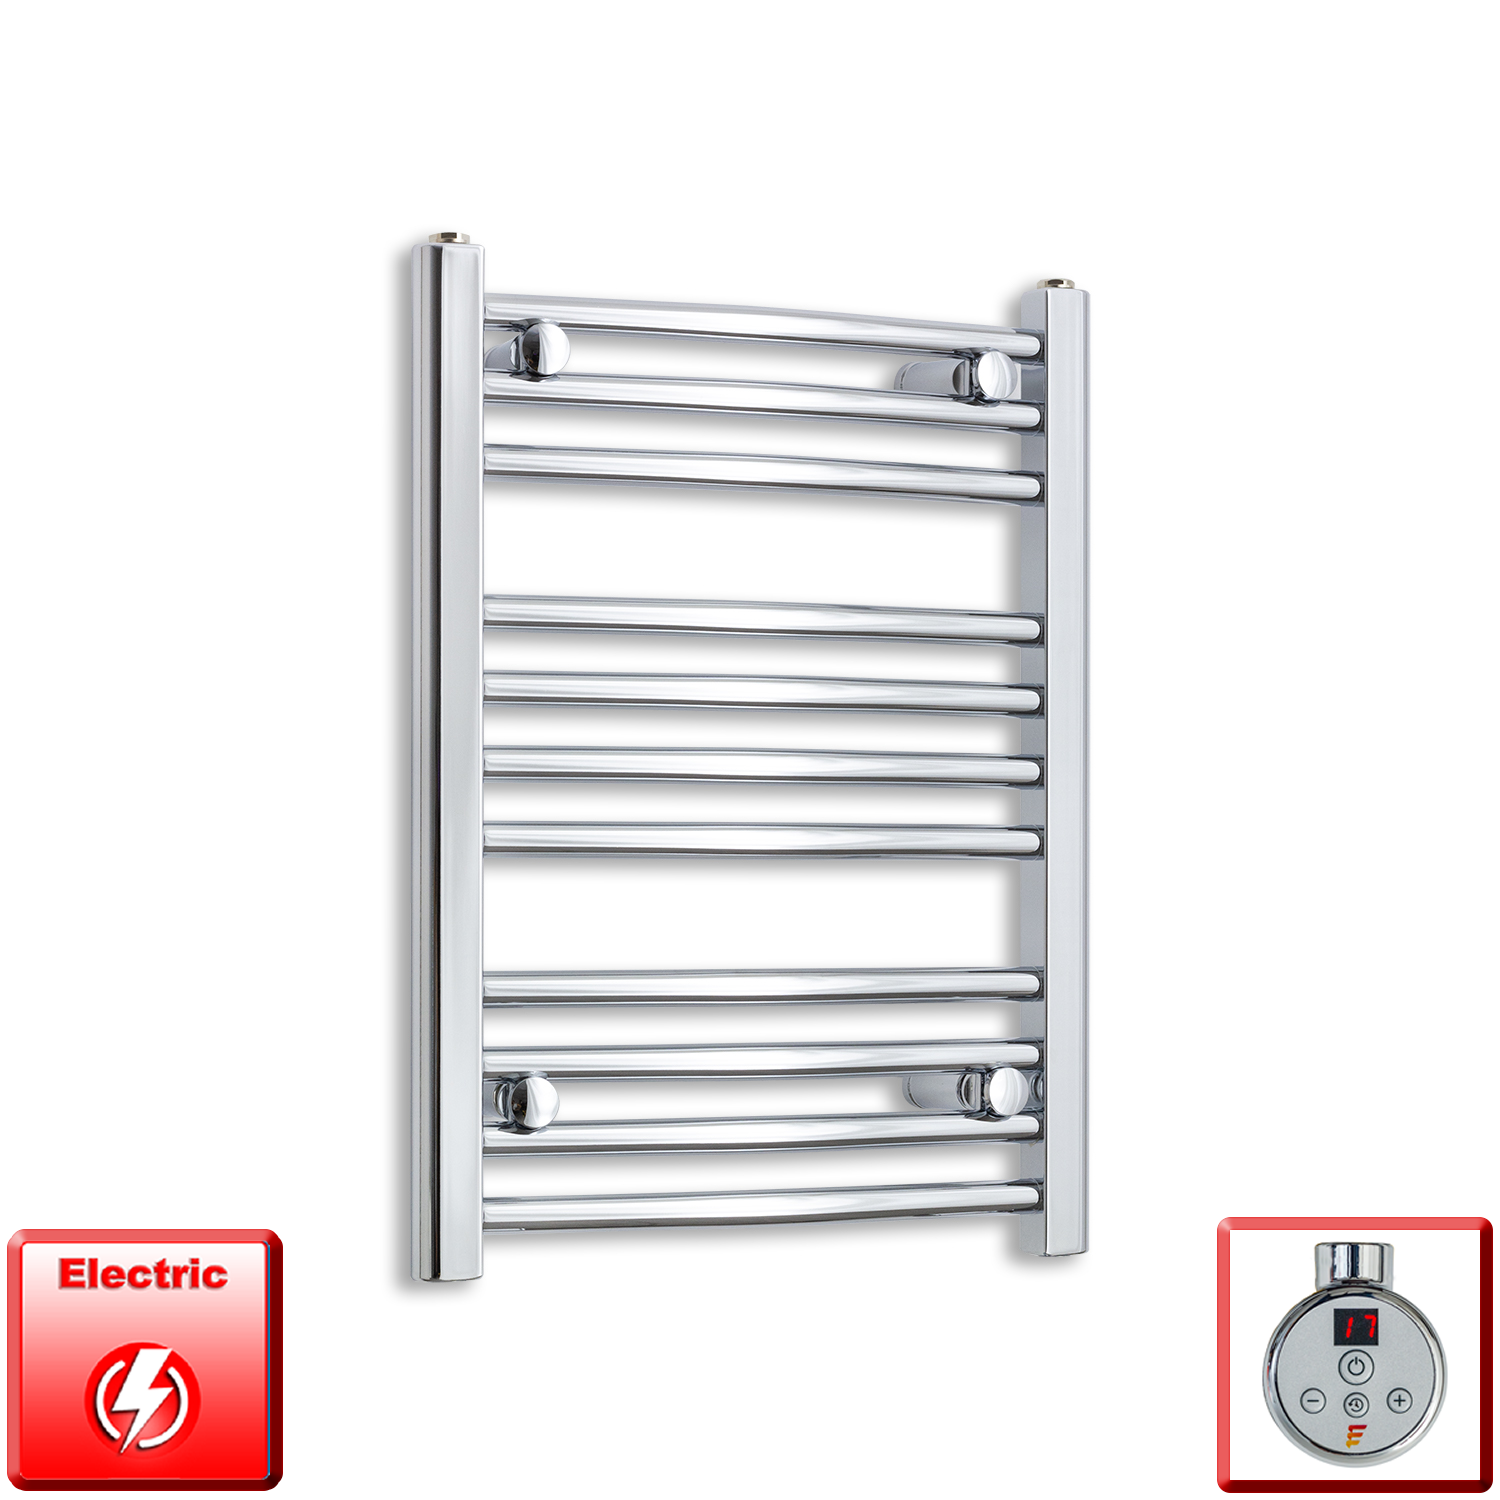 600mm High 400mm Wide Pre-Filled Electric Heated Towel Rail Radiator Straight Chrome